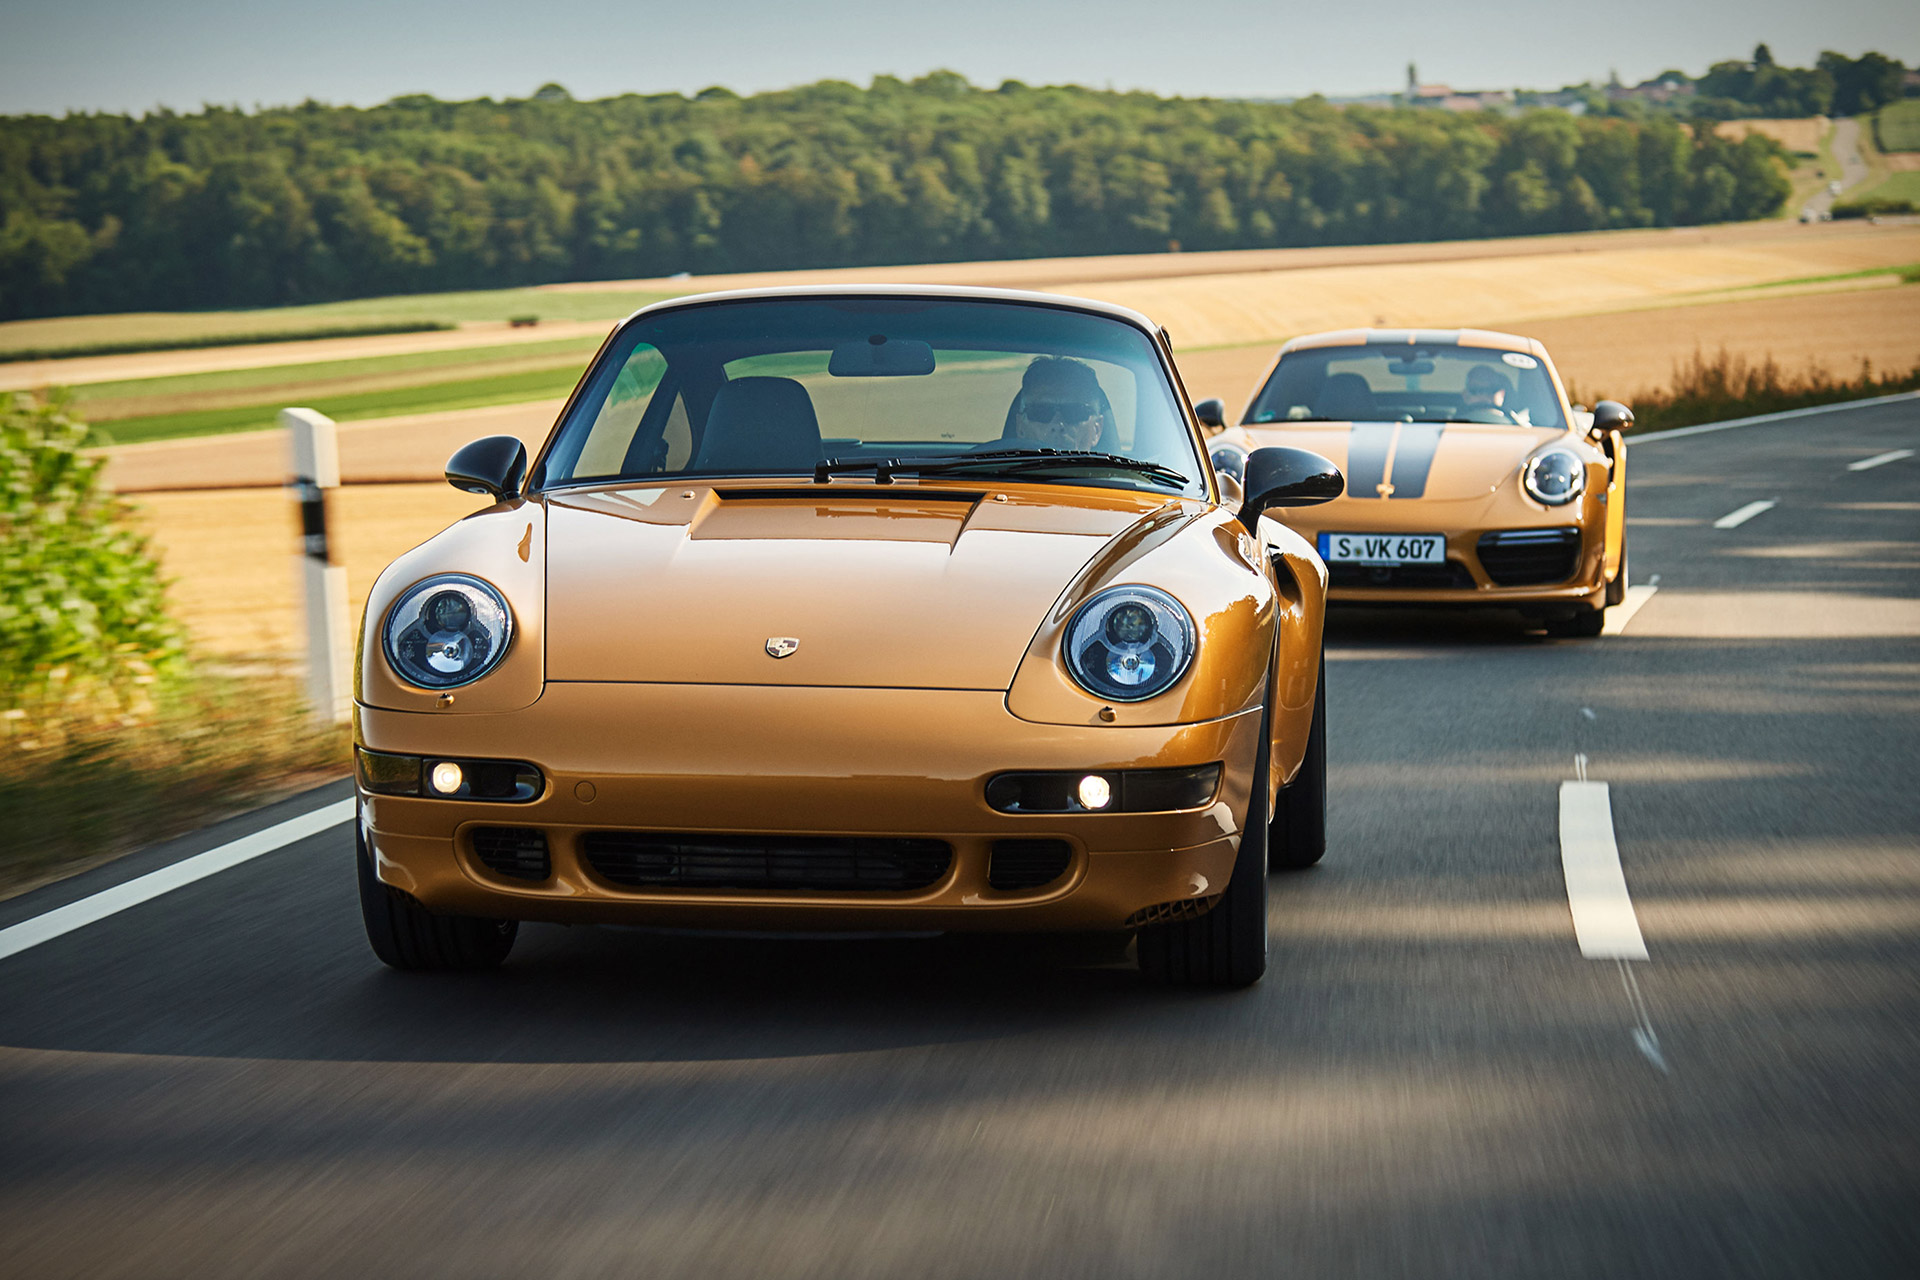 Porsche Project Gold 911 Turbo Coupe